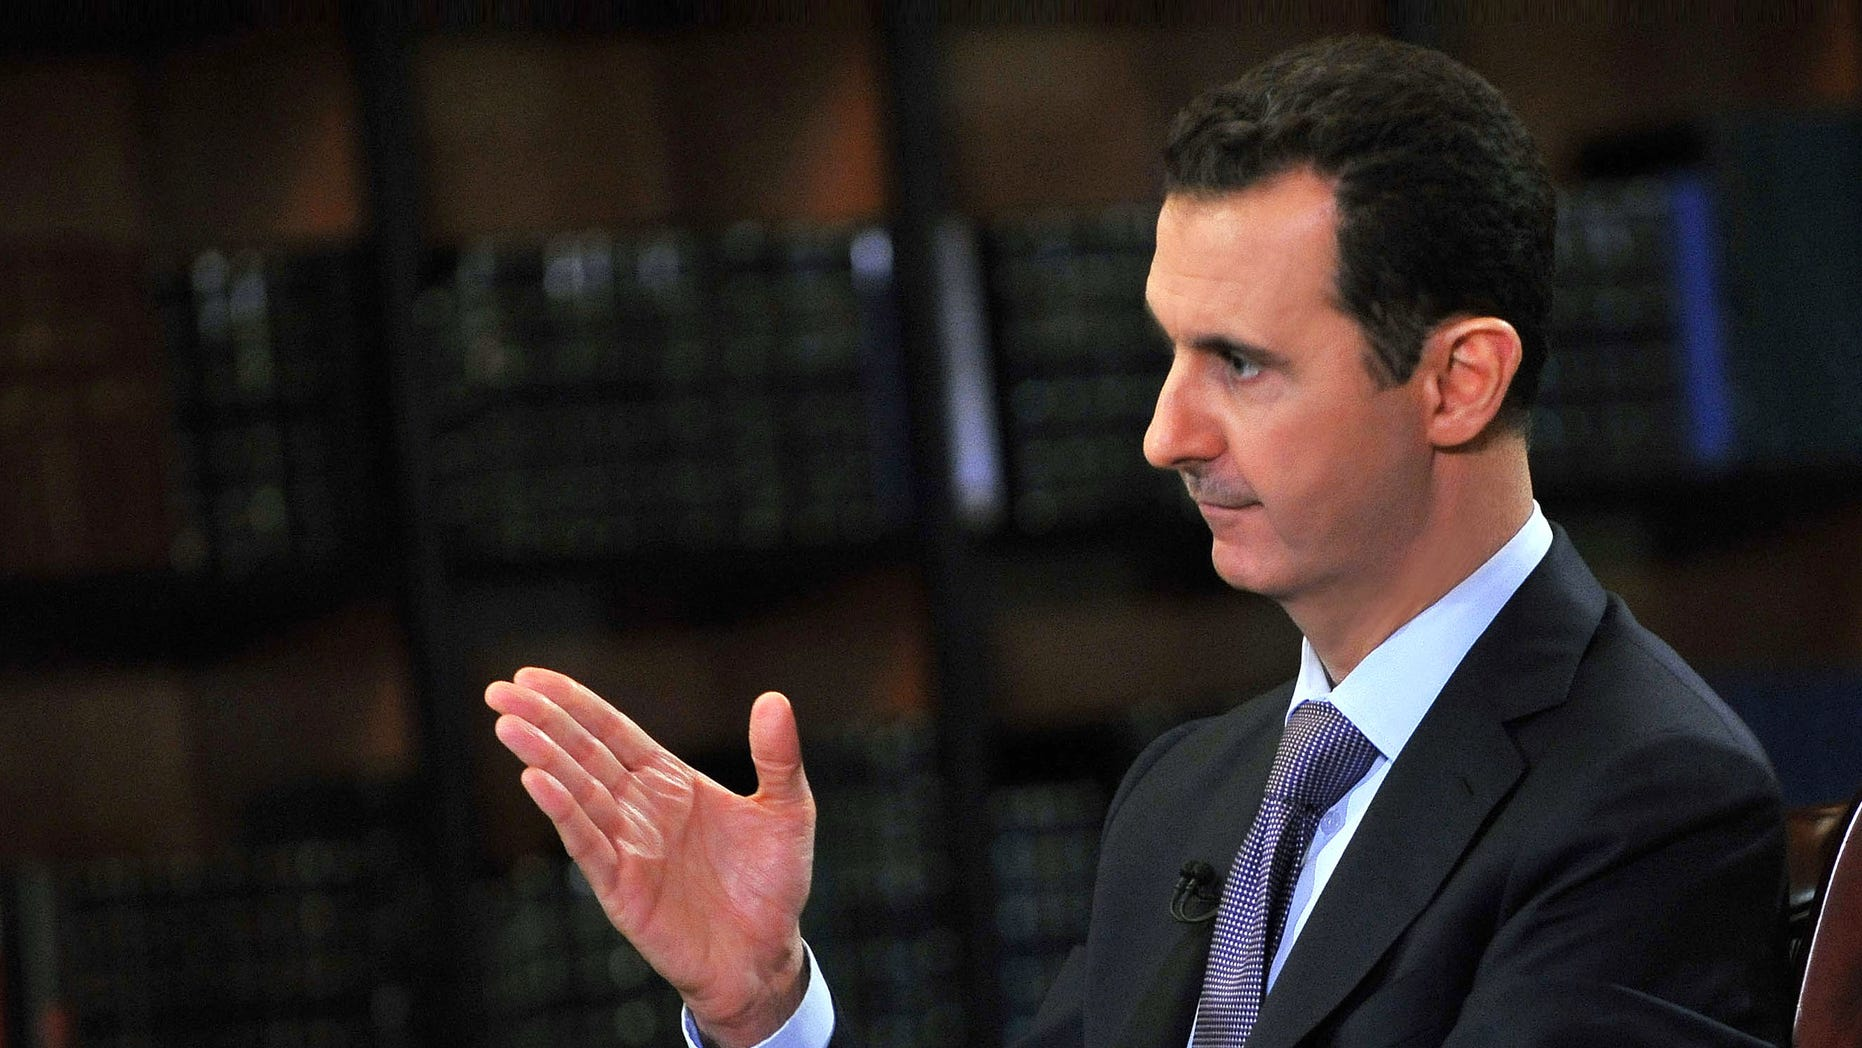 Sept. 29, 2013: In this photo, which AP obtained from Syrian official news agency SANA, has been authenticated based on its contents and other AP reporting, President Bashar Assad gestures as he speaks during an interview with Italy's RAI News 24 TV, at the presidential palace in Damascus, Syria.